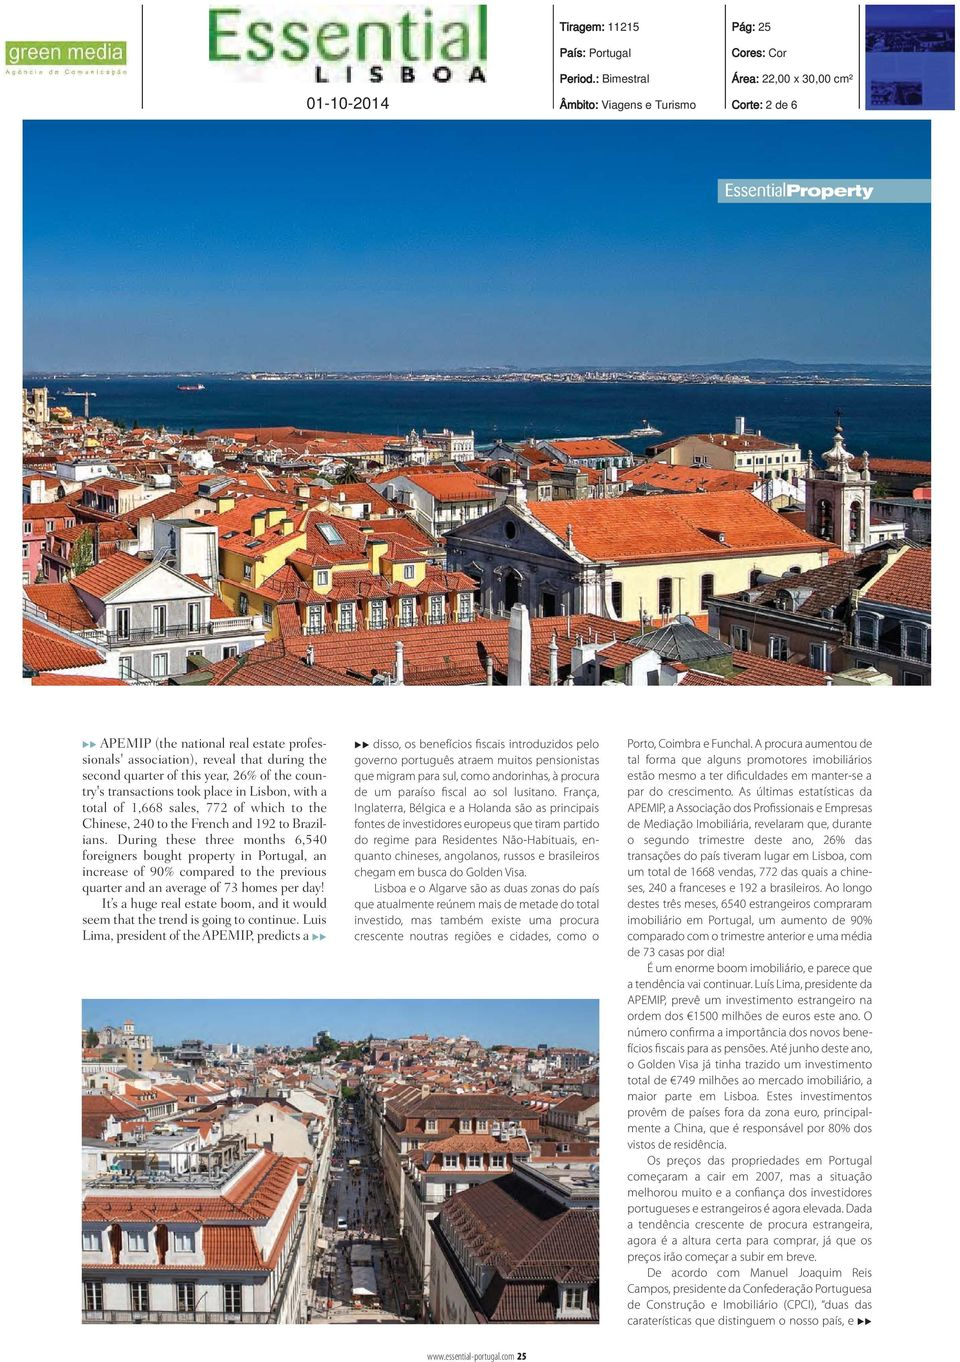 During these three months 6,540 foreigners bought property in Portugal, an increase of 90% compared to the previous quarter and an average of 73 homes per day!